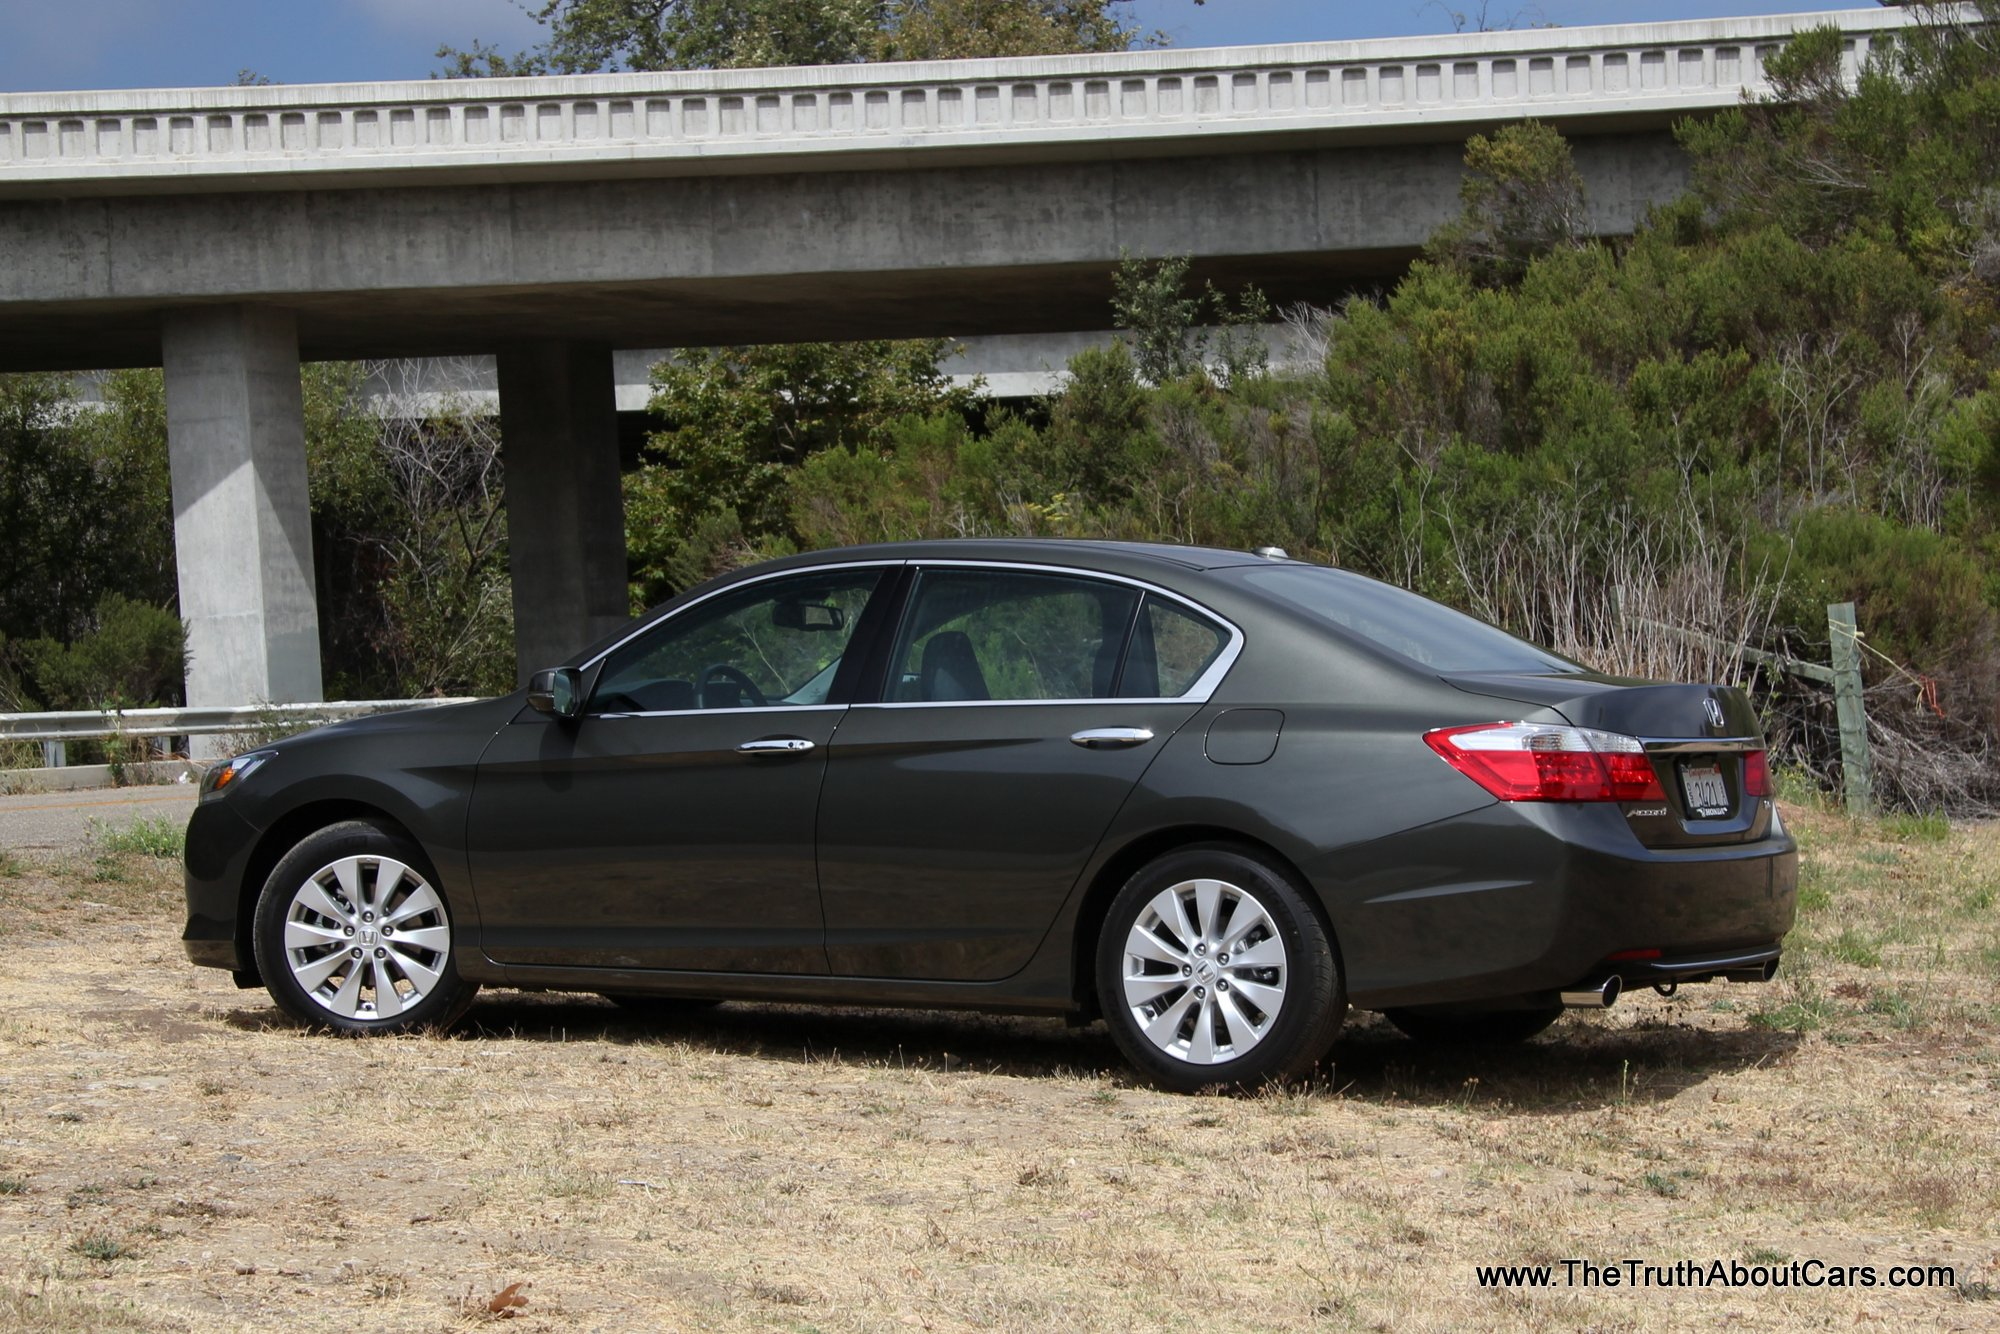 Pre production review 2013 honda accord part 2 the for Rab motors used cars